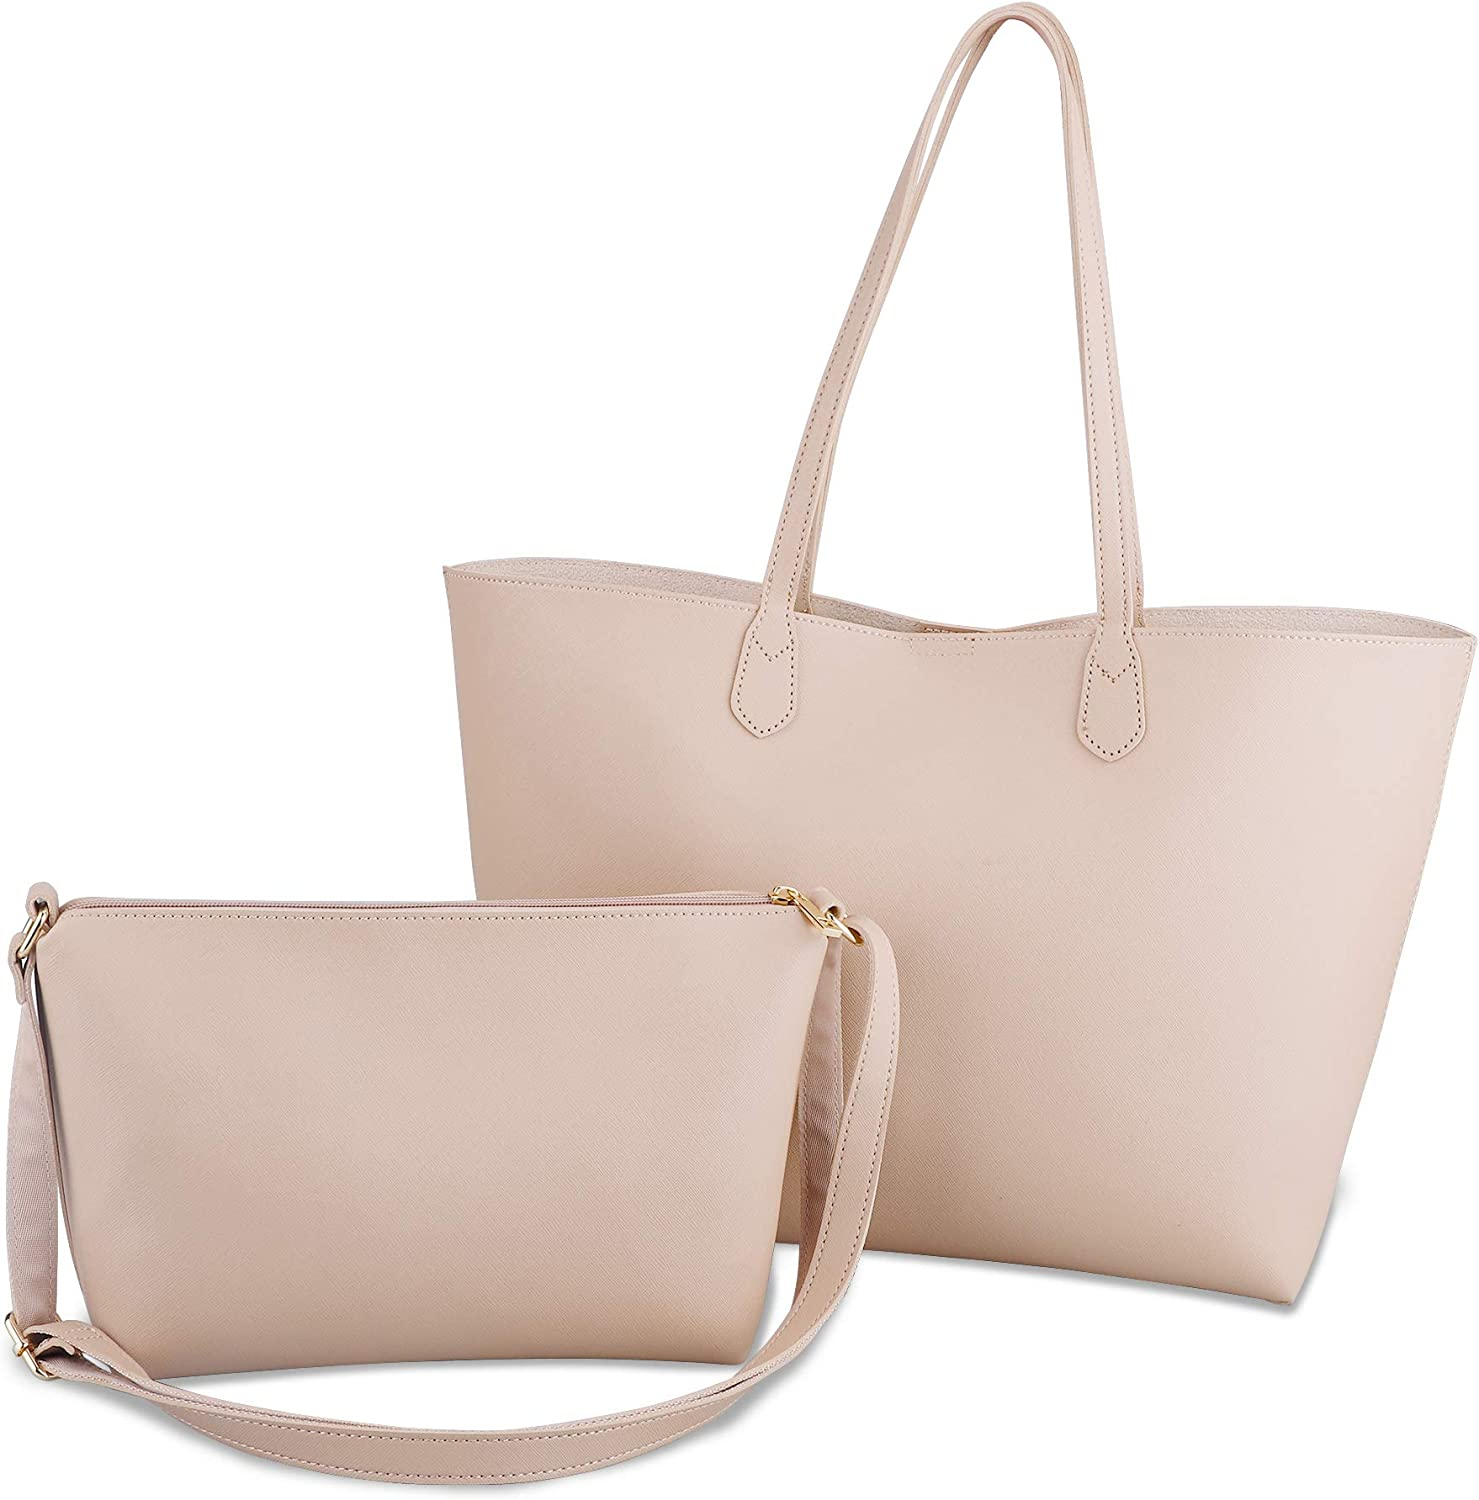 67% OFF of fixed price Quality inspection FLOTOWN Tote Bag for Women Shoulder Retro Set 2 Classic of